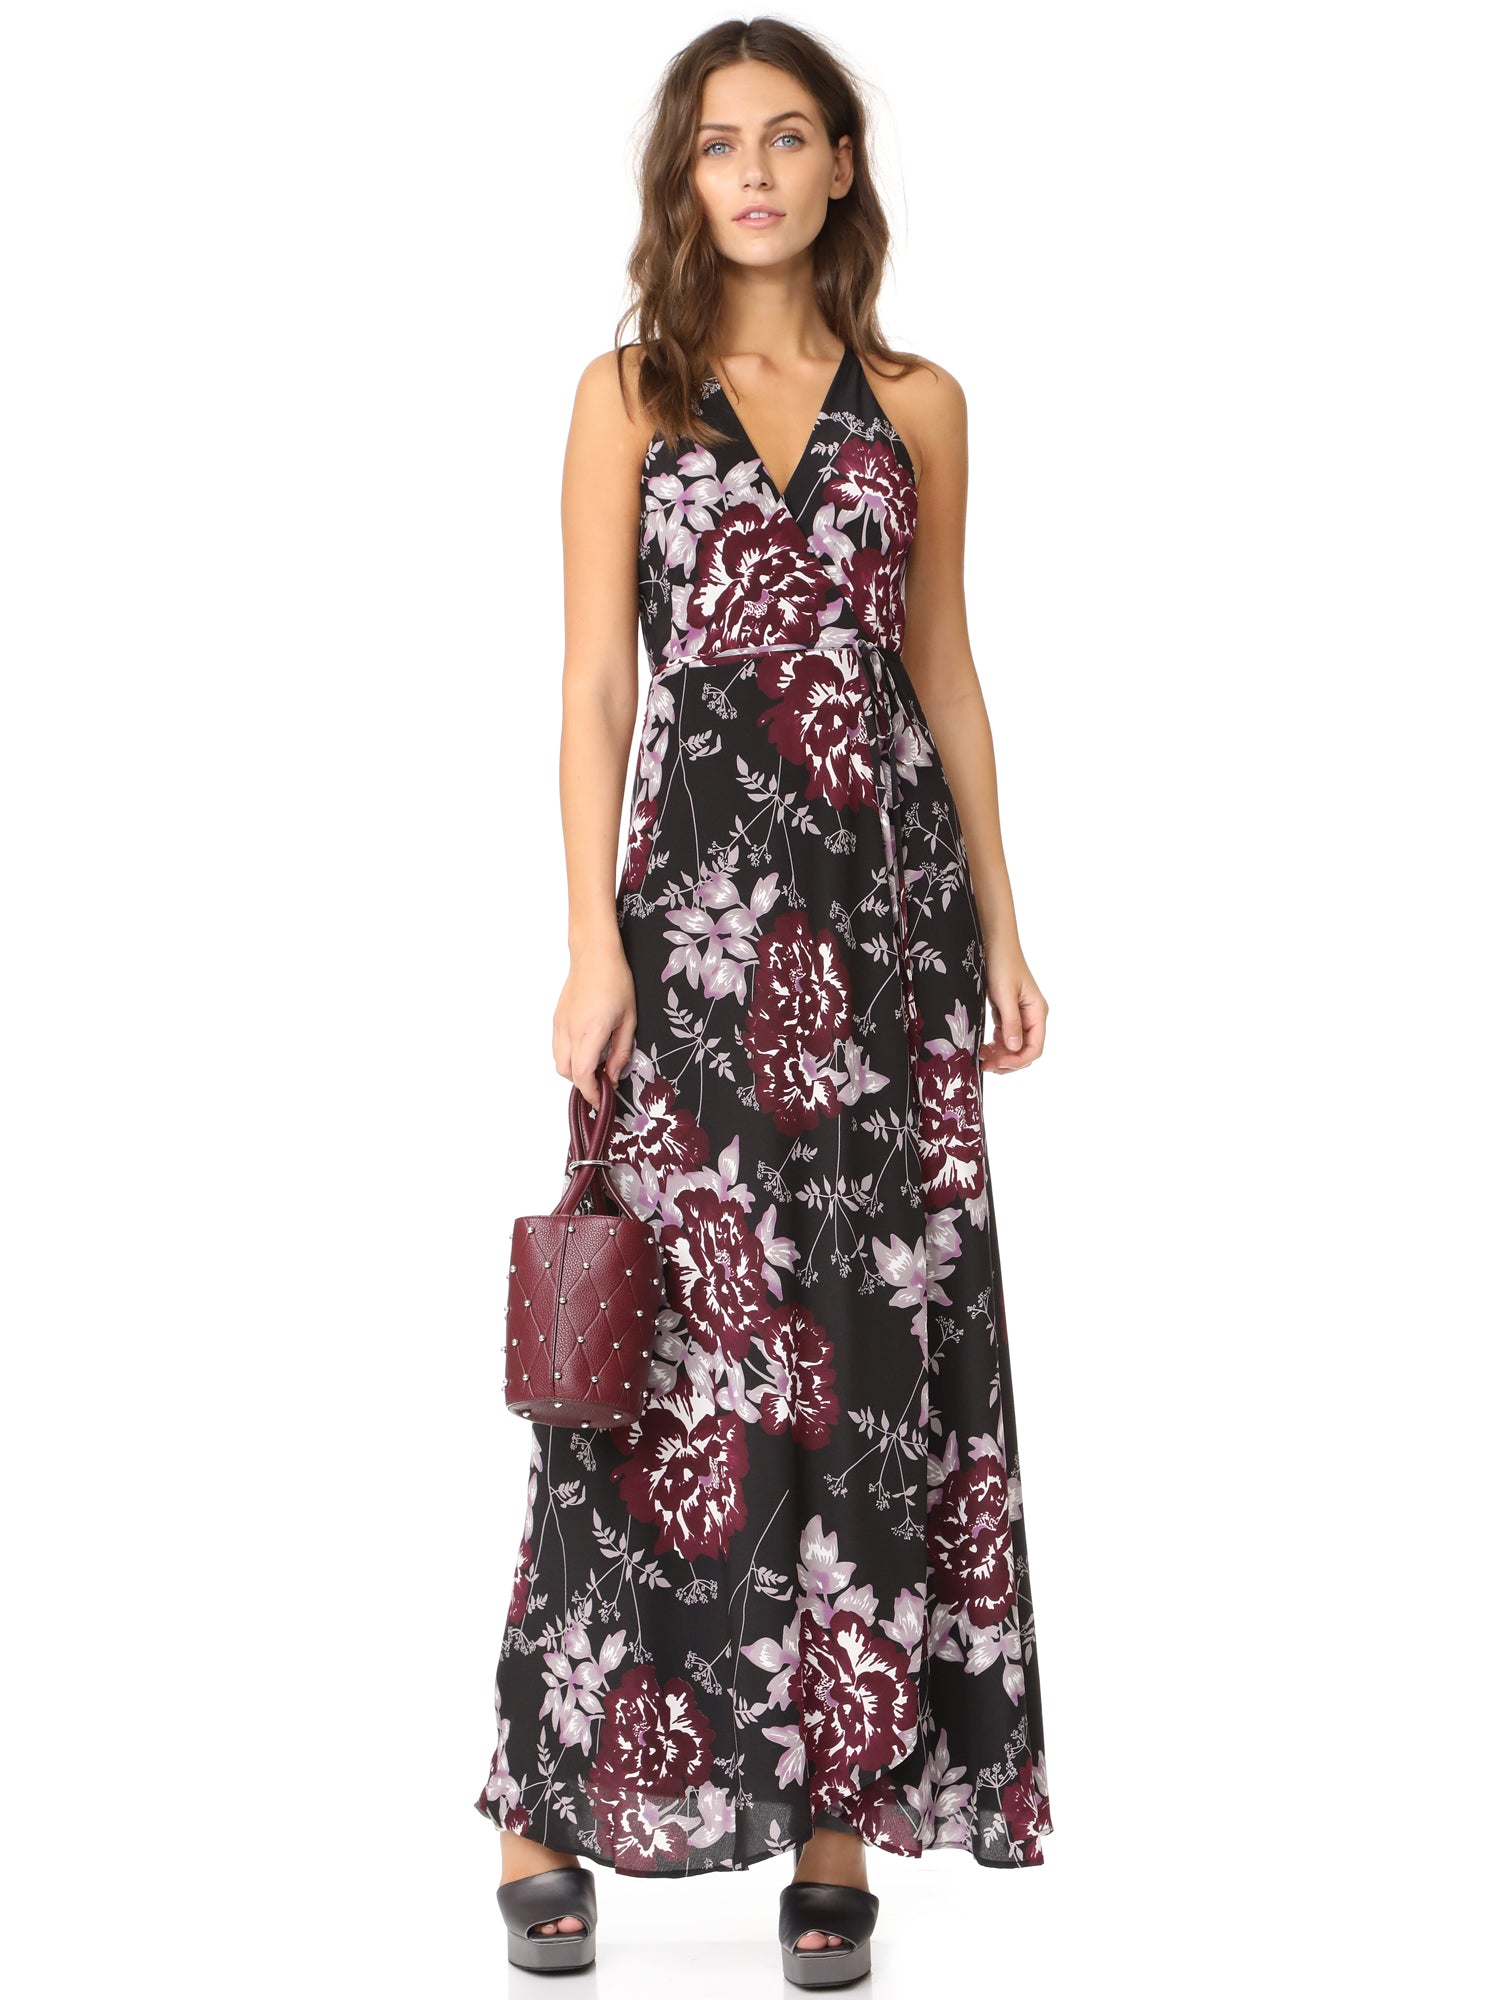 Yumi Kim Rush Hour Silk Wrap Maxi Dress - Rose Ella Floral Print | TILDEN